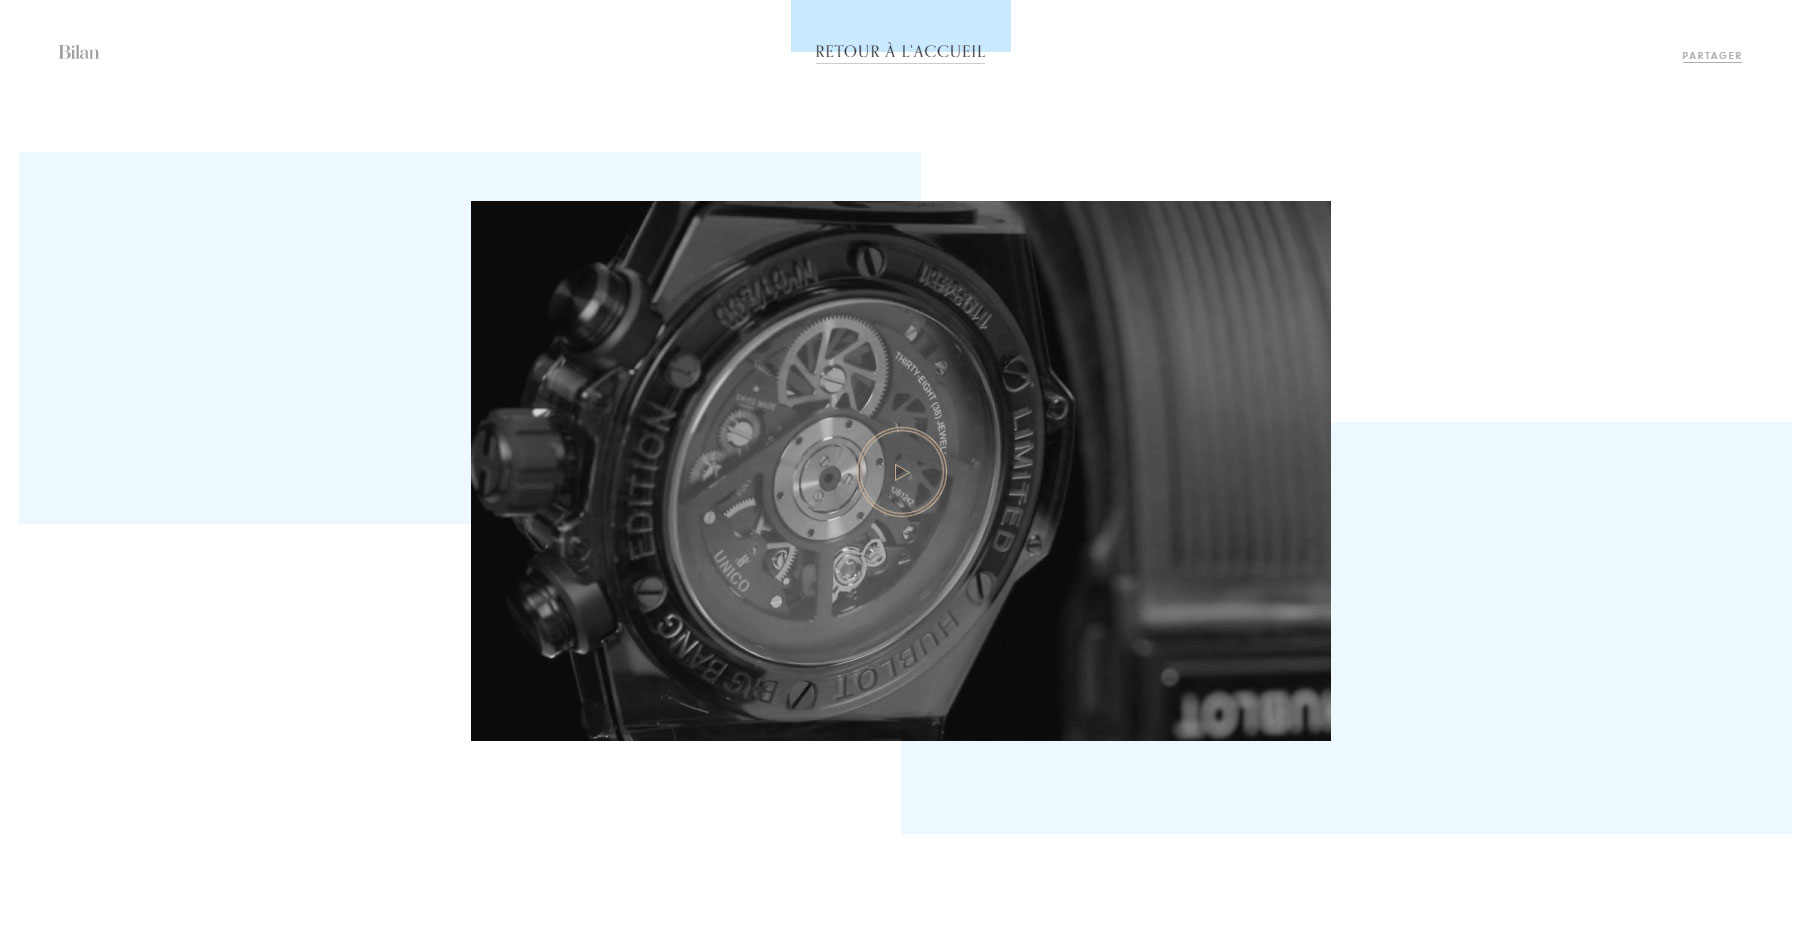 2016 Trends in the watch industry  - Website of the Day